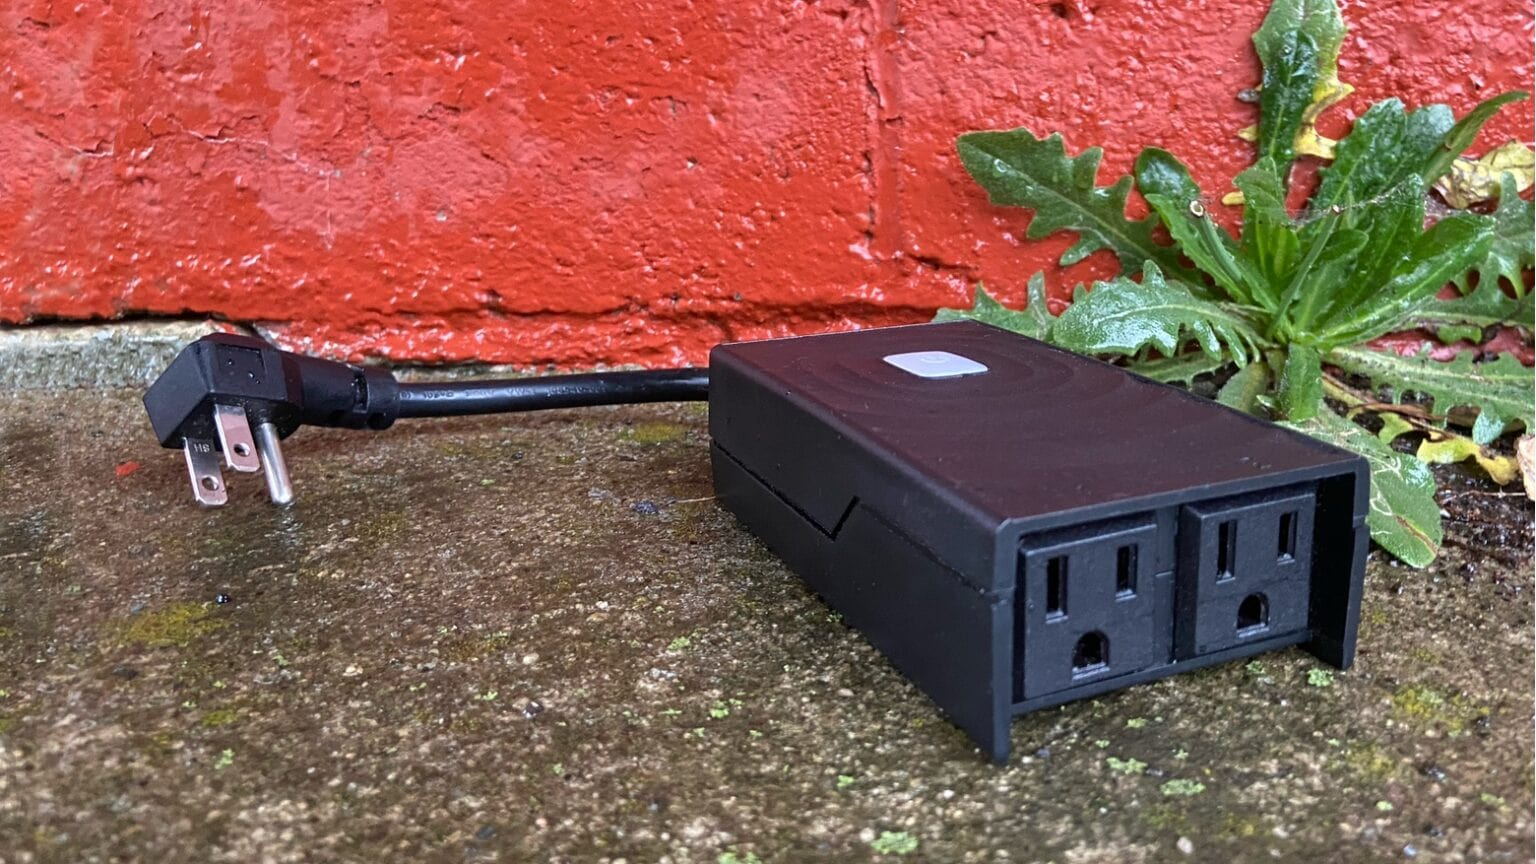 Meross Smart WiFi Indoor/Outdoor Plug review